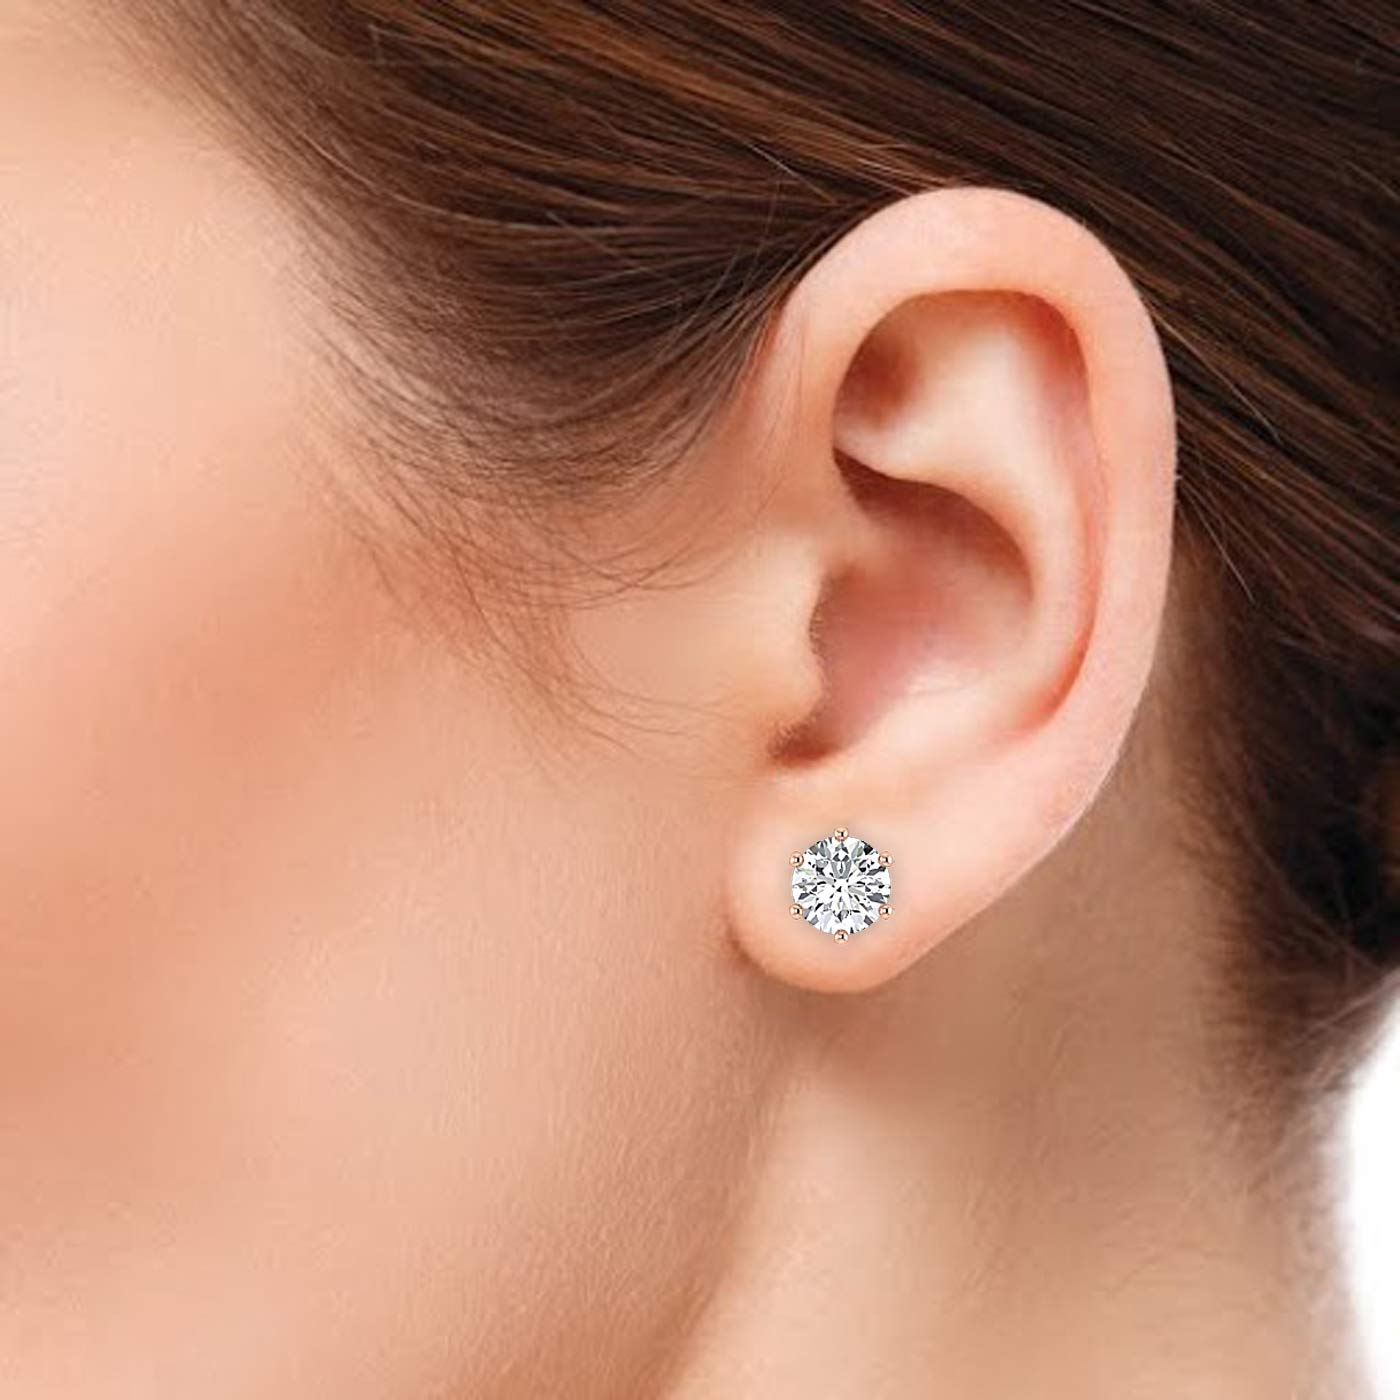 Earring Studs 0.3 to 4 Carat Moissanite Stud Earrings /Pure Gold // 925 Sterling Silver GH//VVS Stud Earrings for Women perfect Jewelry Gifts for Women Teen Girls Round Brilliant